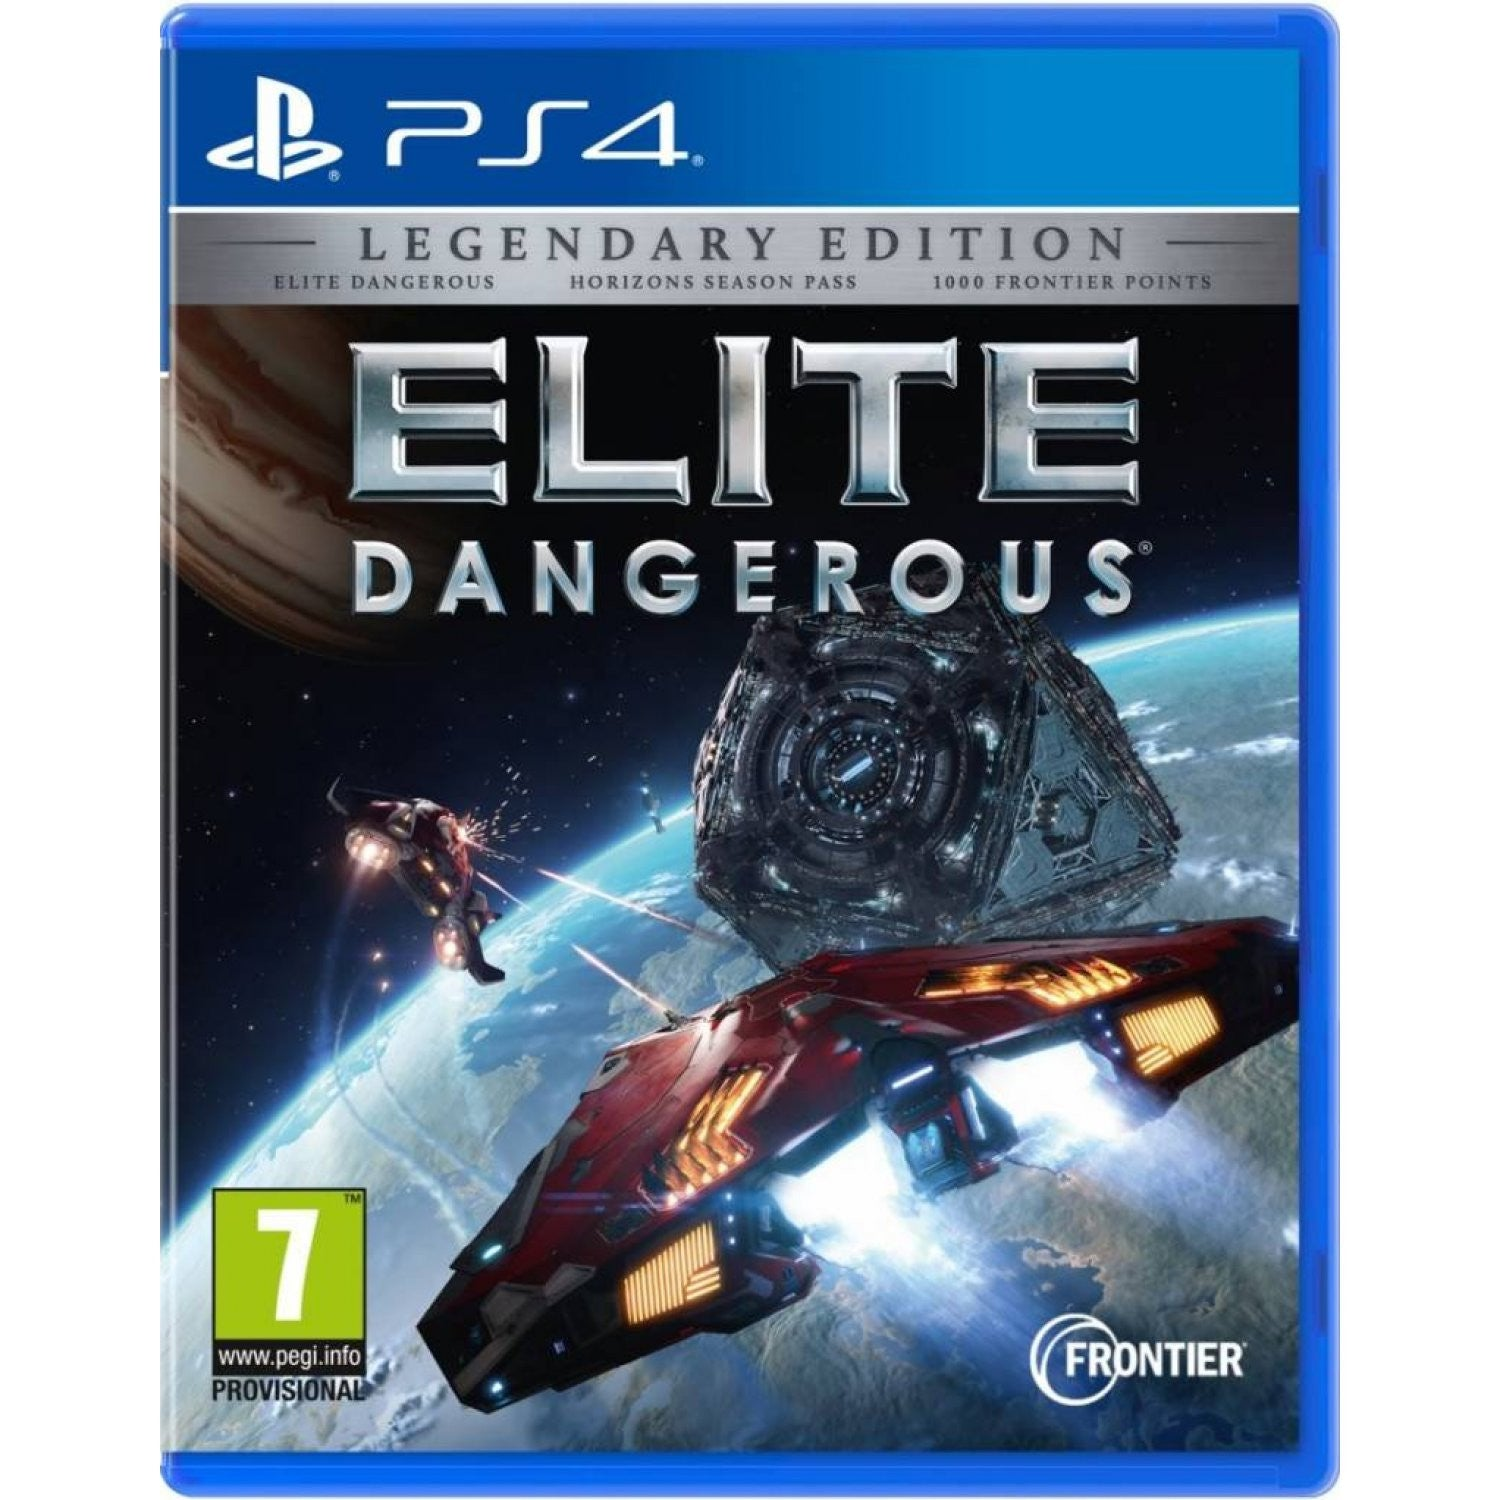 Sony Playstation 4 Tagged Ps4 Page 8 Slim 2006 500 Gb Game Fifa 17 Elite Dangerous Legendary Edition